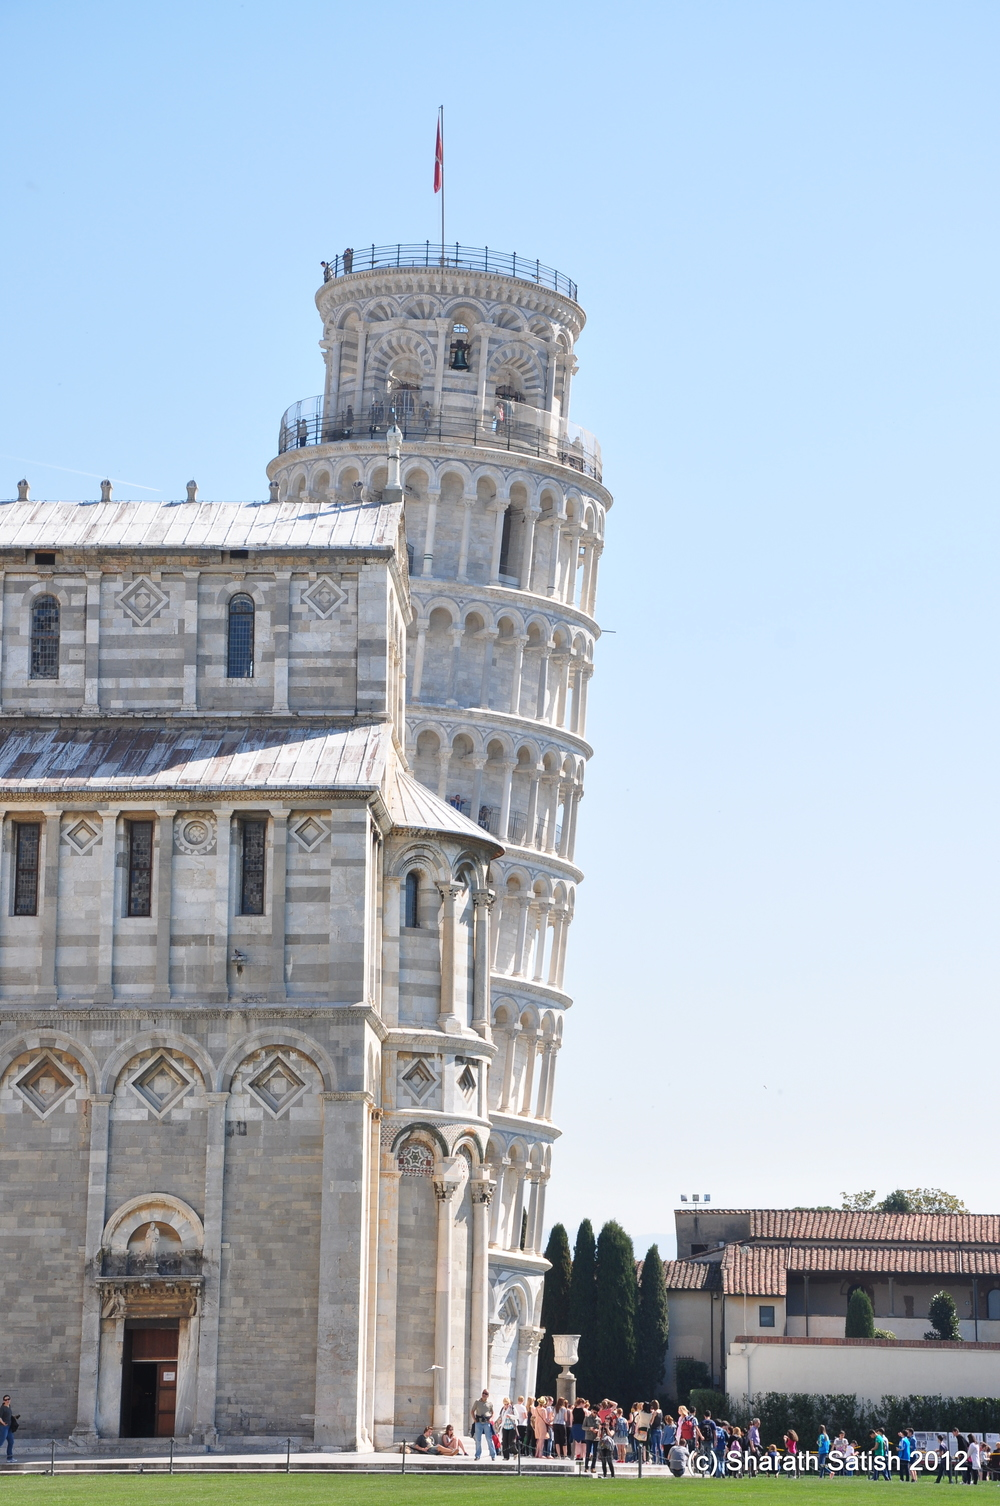 Leaning tower of Pisa! It really leans.